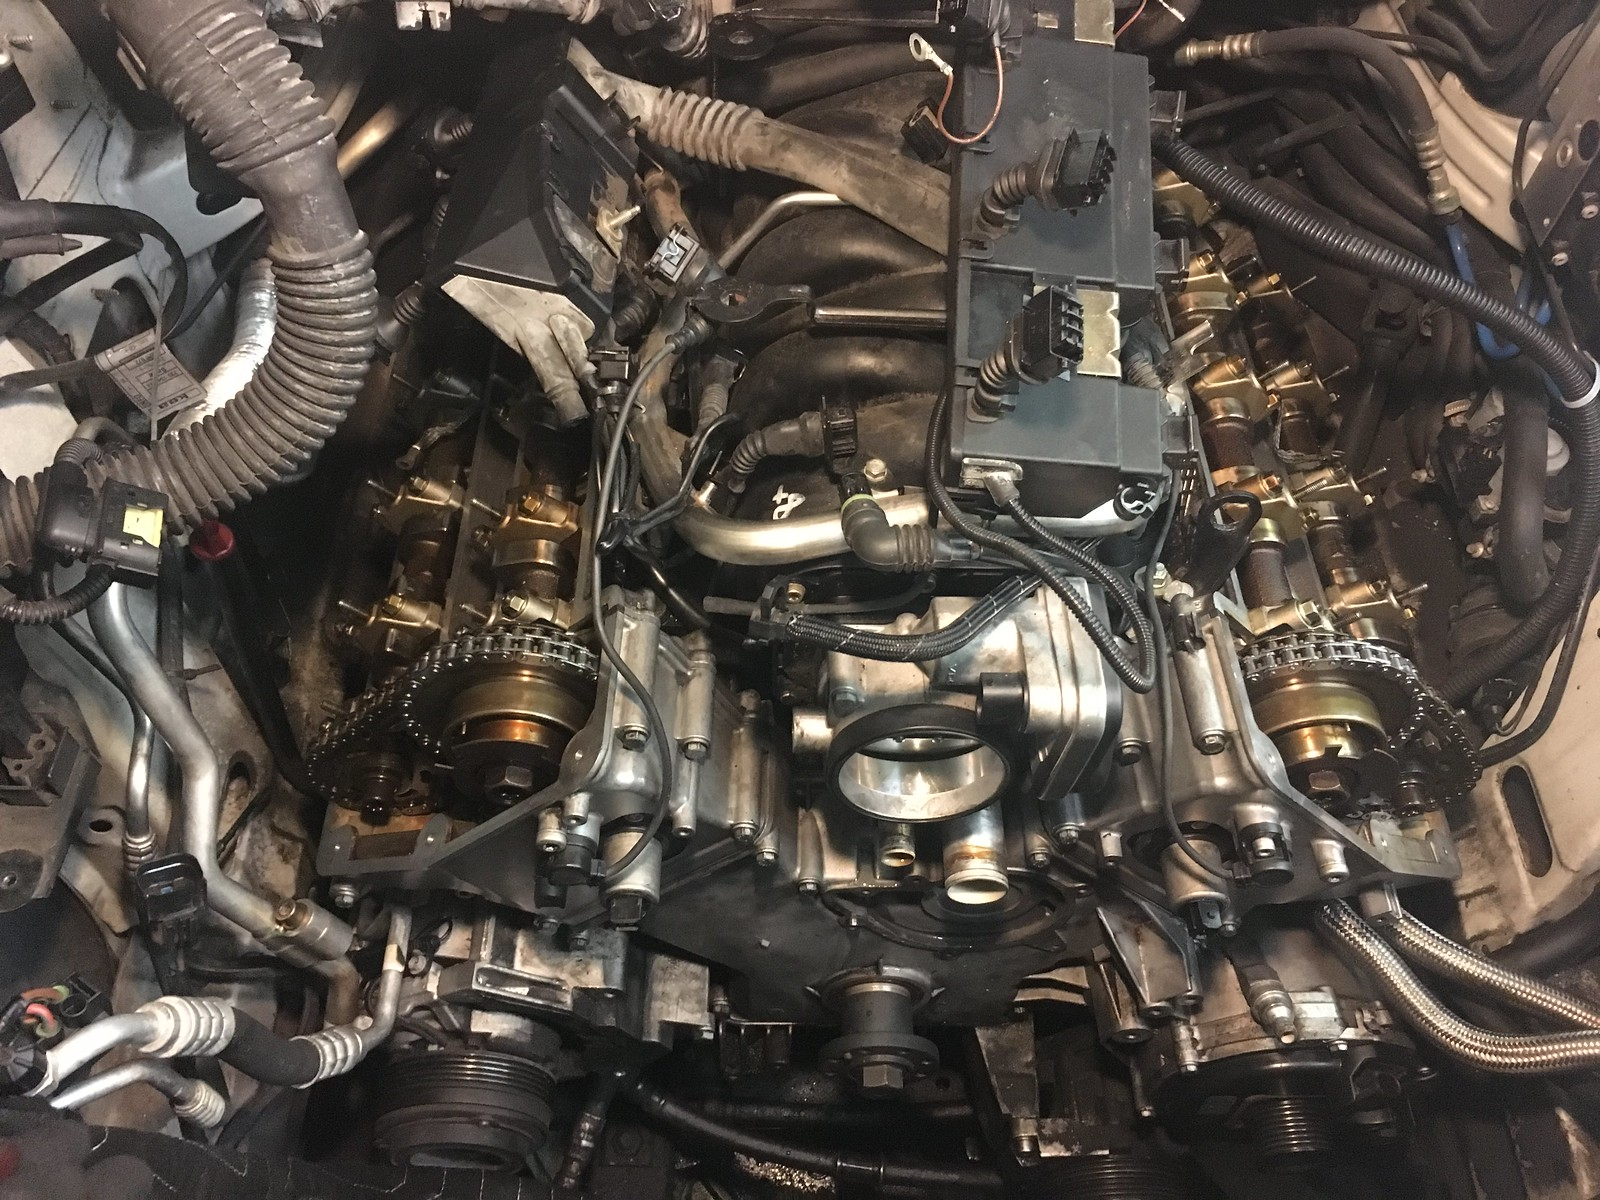 Dannys 2004 Range Rover Hse Page 6 Timing Belt Tonight My Goal Is To Install The Water Pump Crankshaft Pulley Tensioners Belts Valve Covers And Cooling Hoses